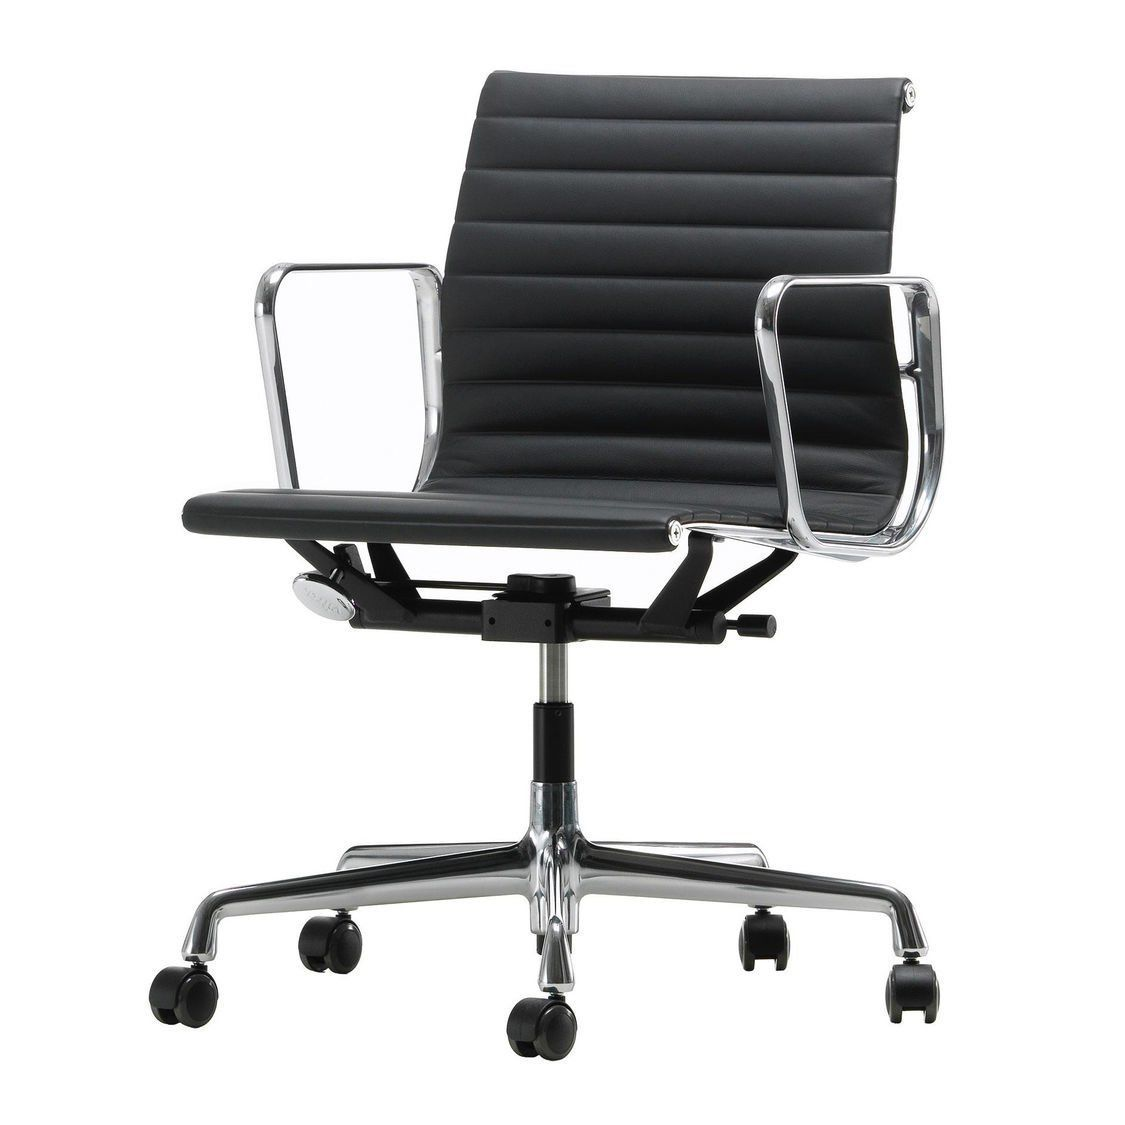 Vitra ea 117 alu chair polished base ambientedirect for Vitra alu chair replica